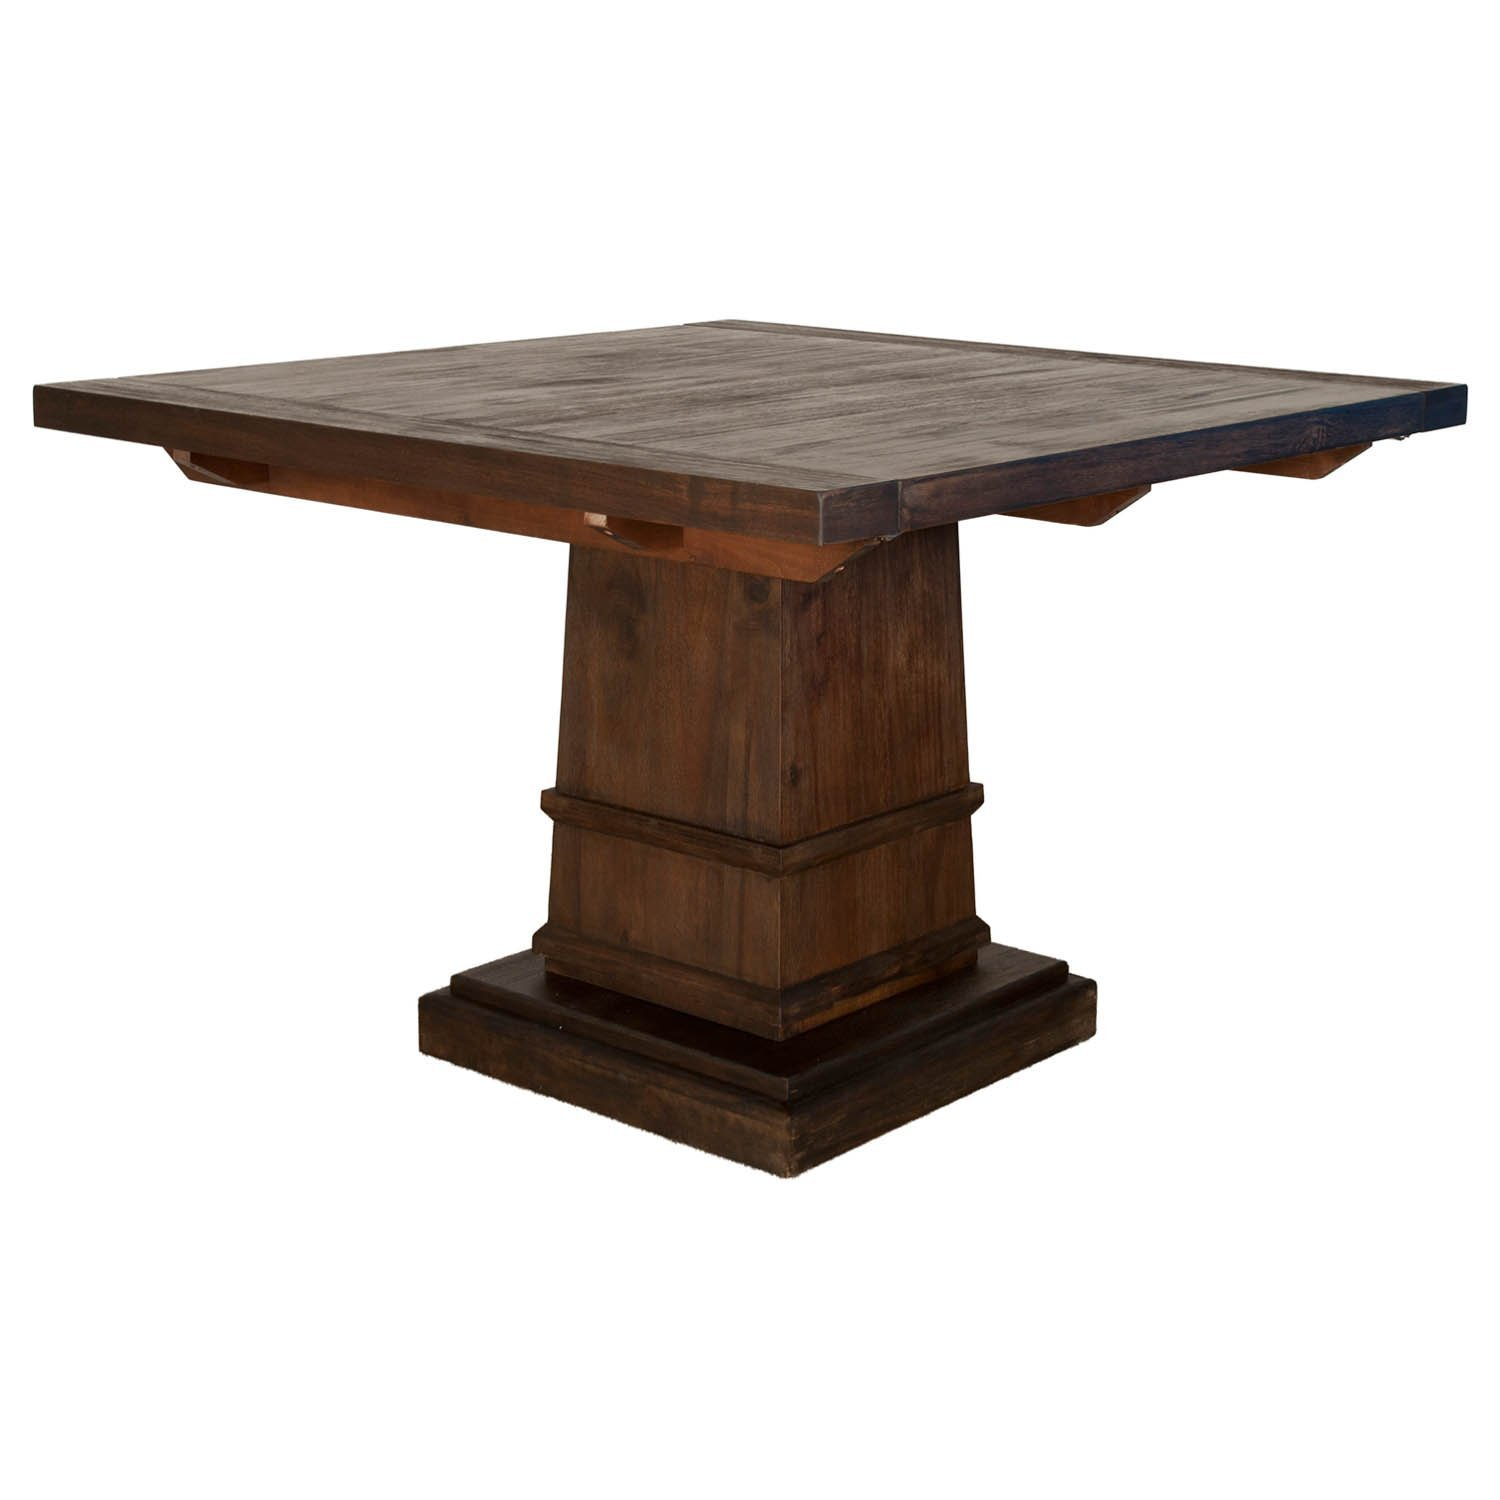 Hudson Square Extension Dining Table, Rustic Java